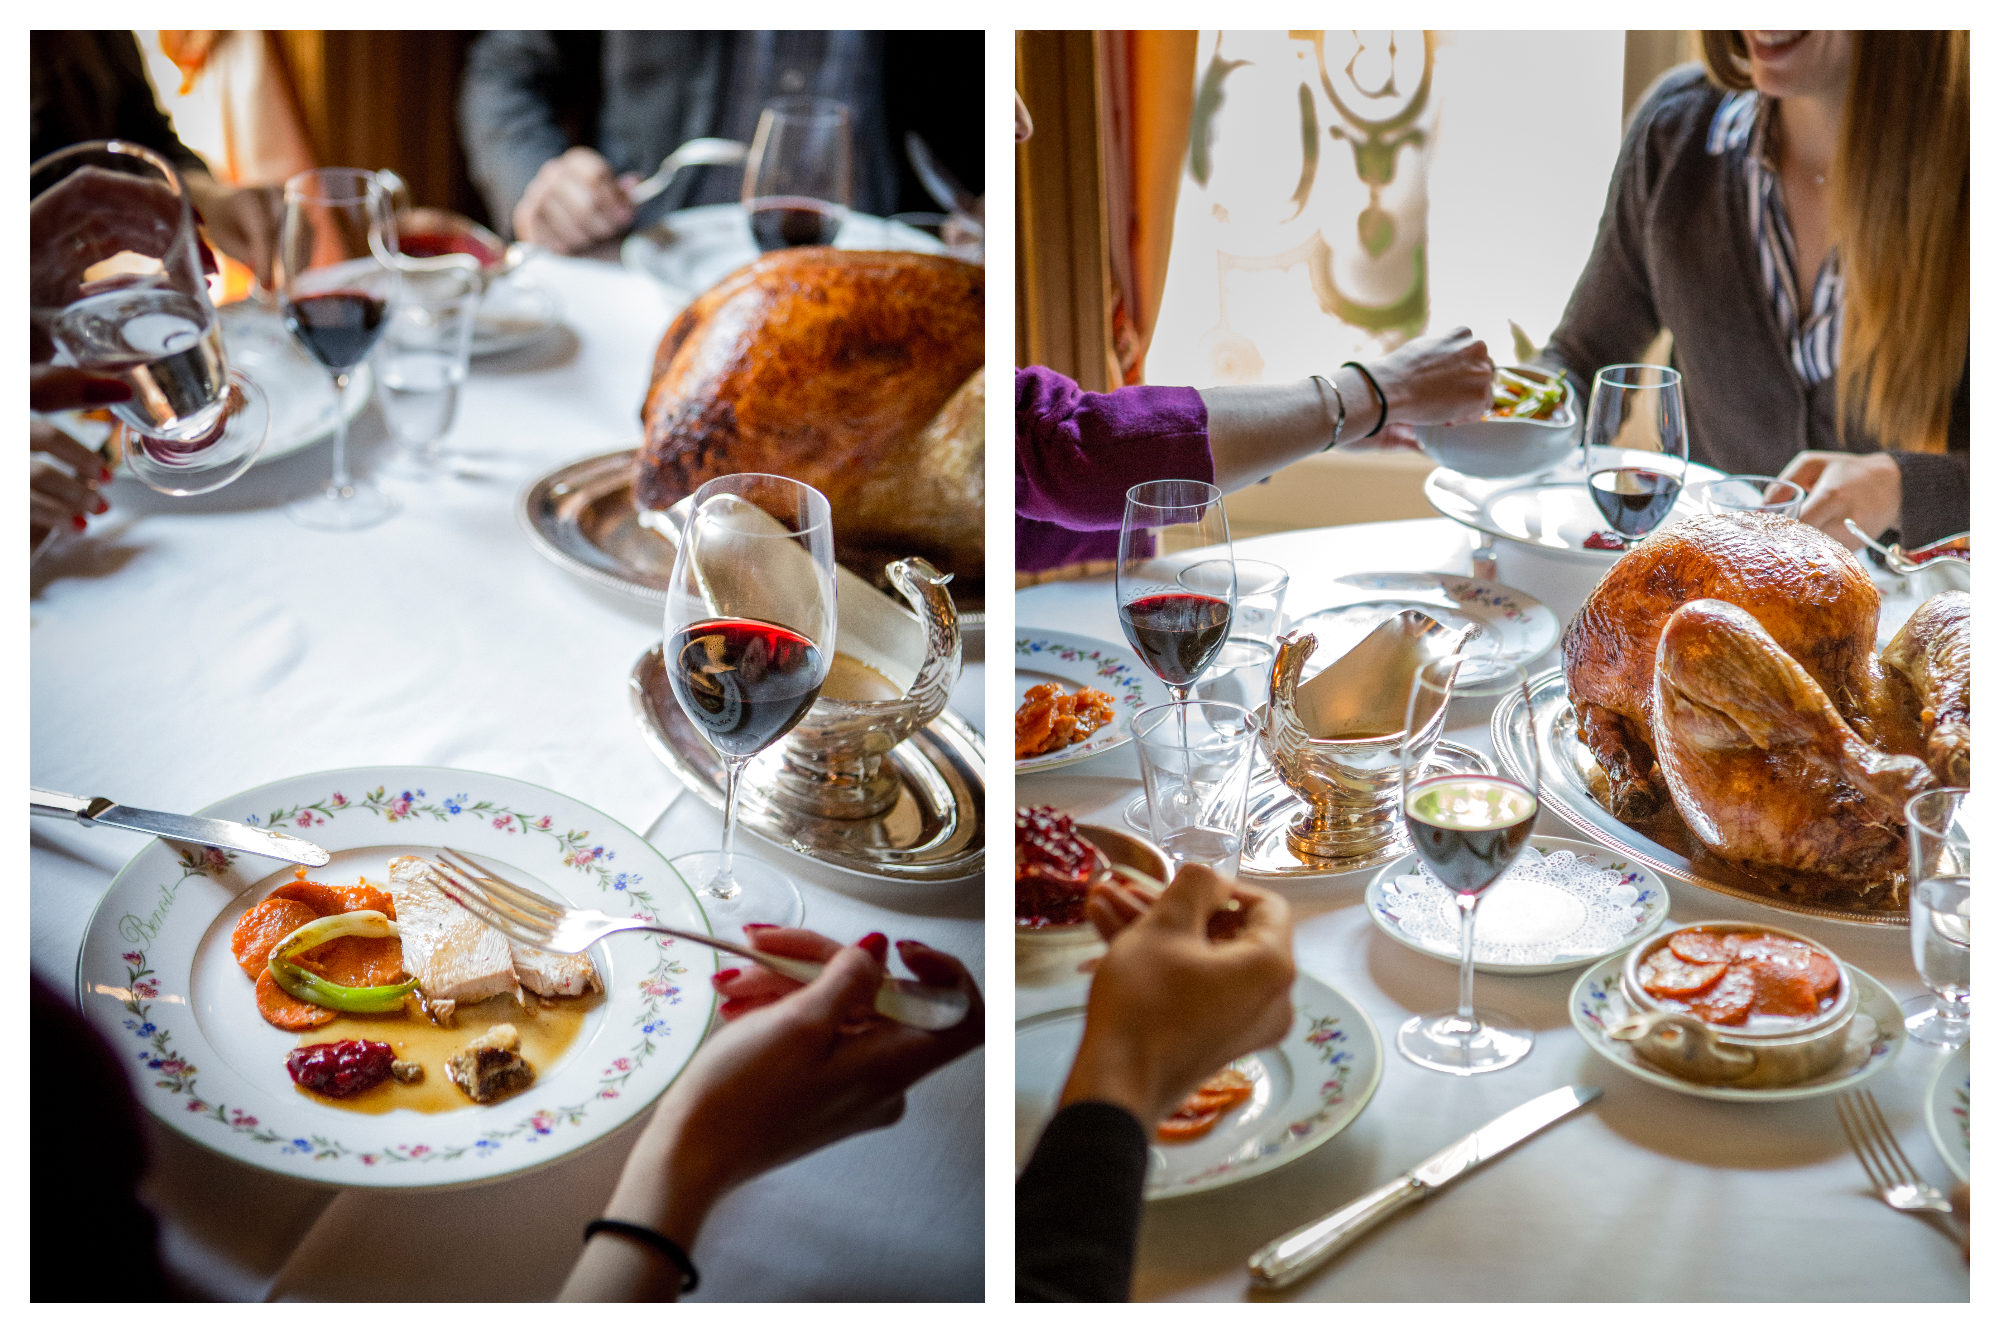 A beautiful Thanksgiving setting at Benoit in Paris, with people enjoying roast turkey and all the trimmings.